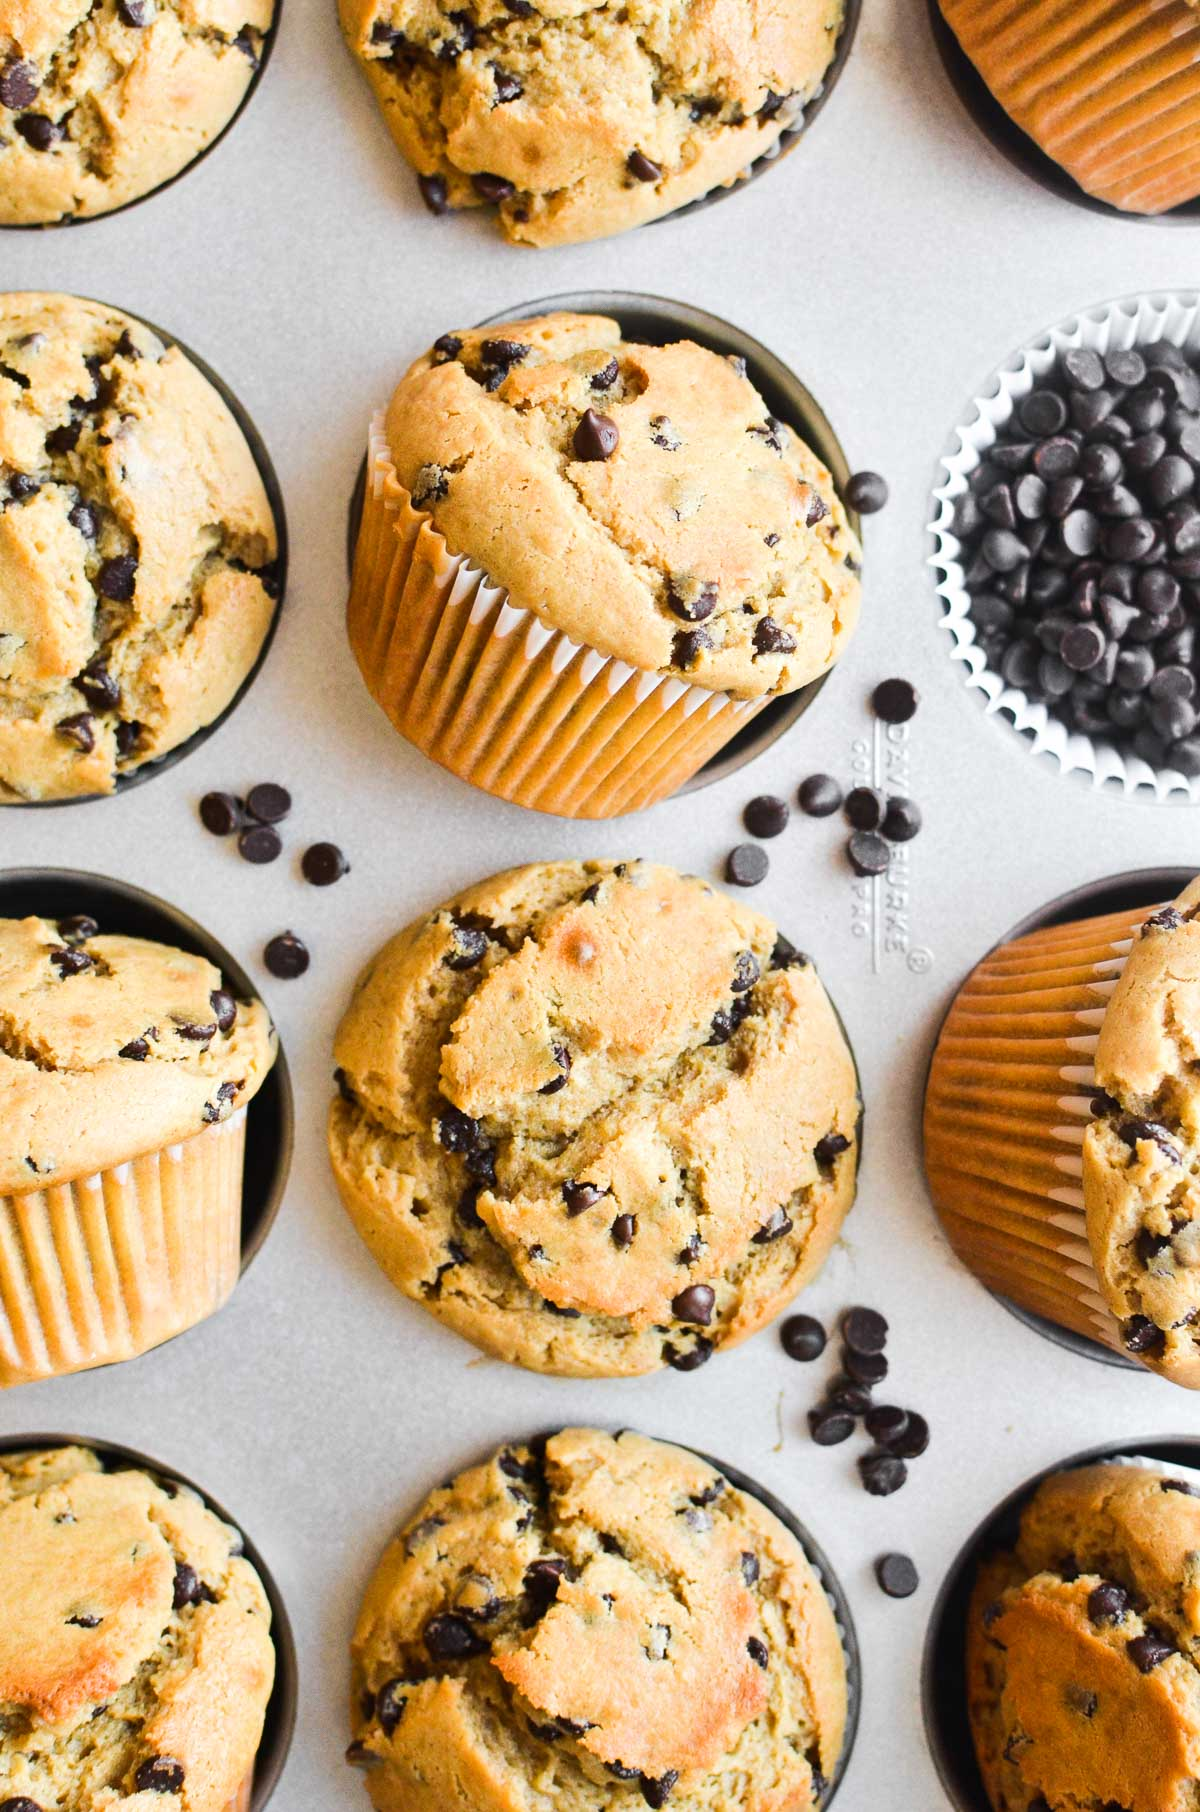 peanut butter muffins in a muffin tin with chocolate chips